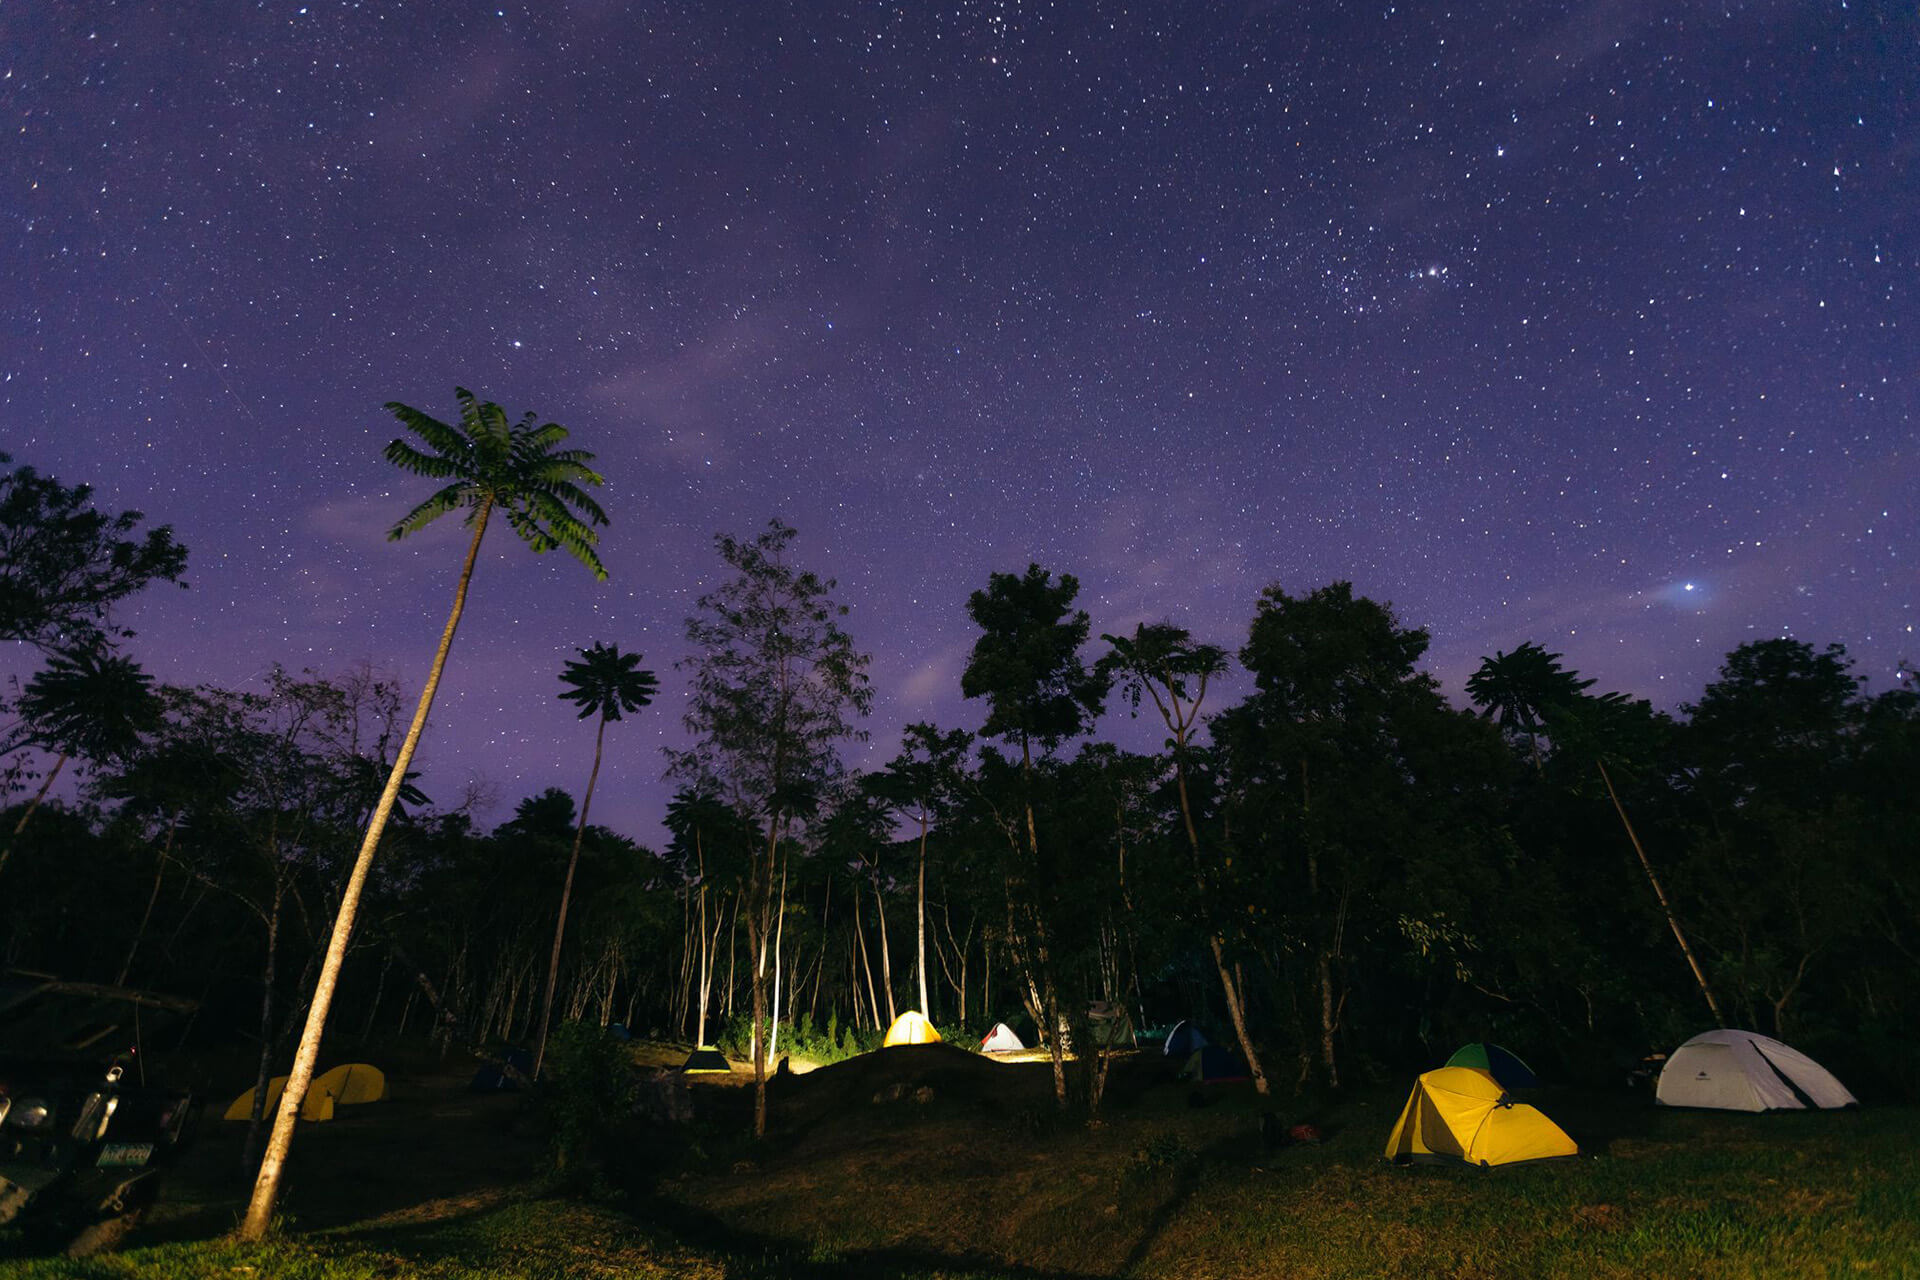 Filipino astronomers and astronomy enthusiasts are leading the way for space education in the Philippines. Away from the blinding lights of the city, they also find peace in the night sky.